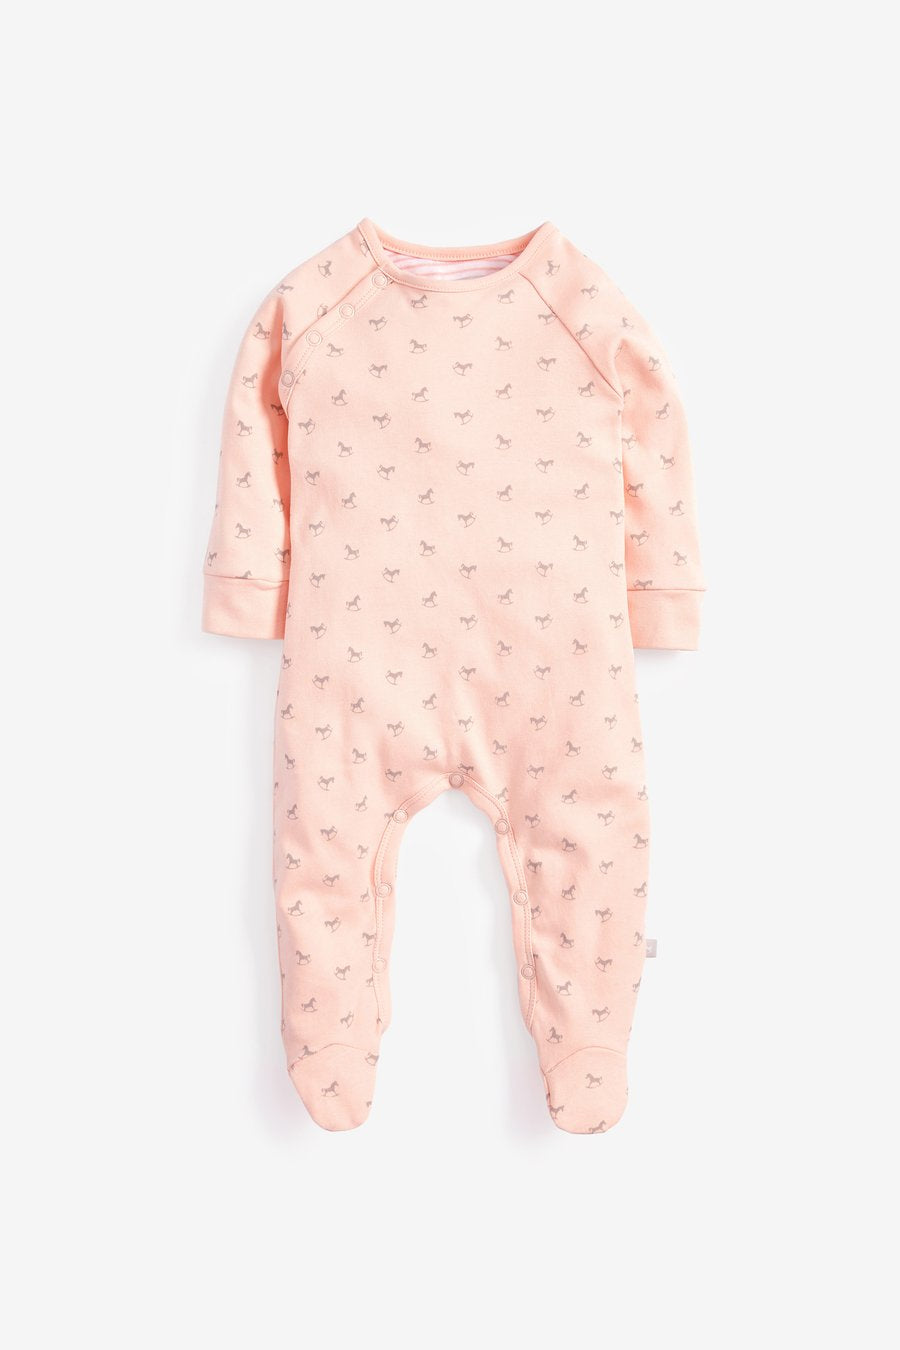 Super soft Jersey Sleepsuit in pink